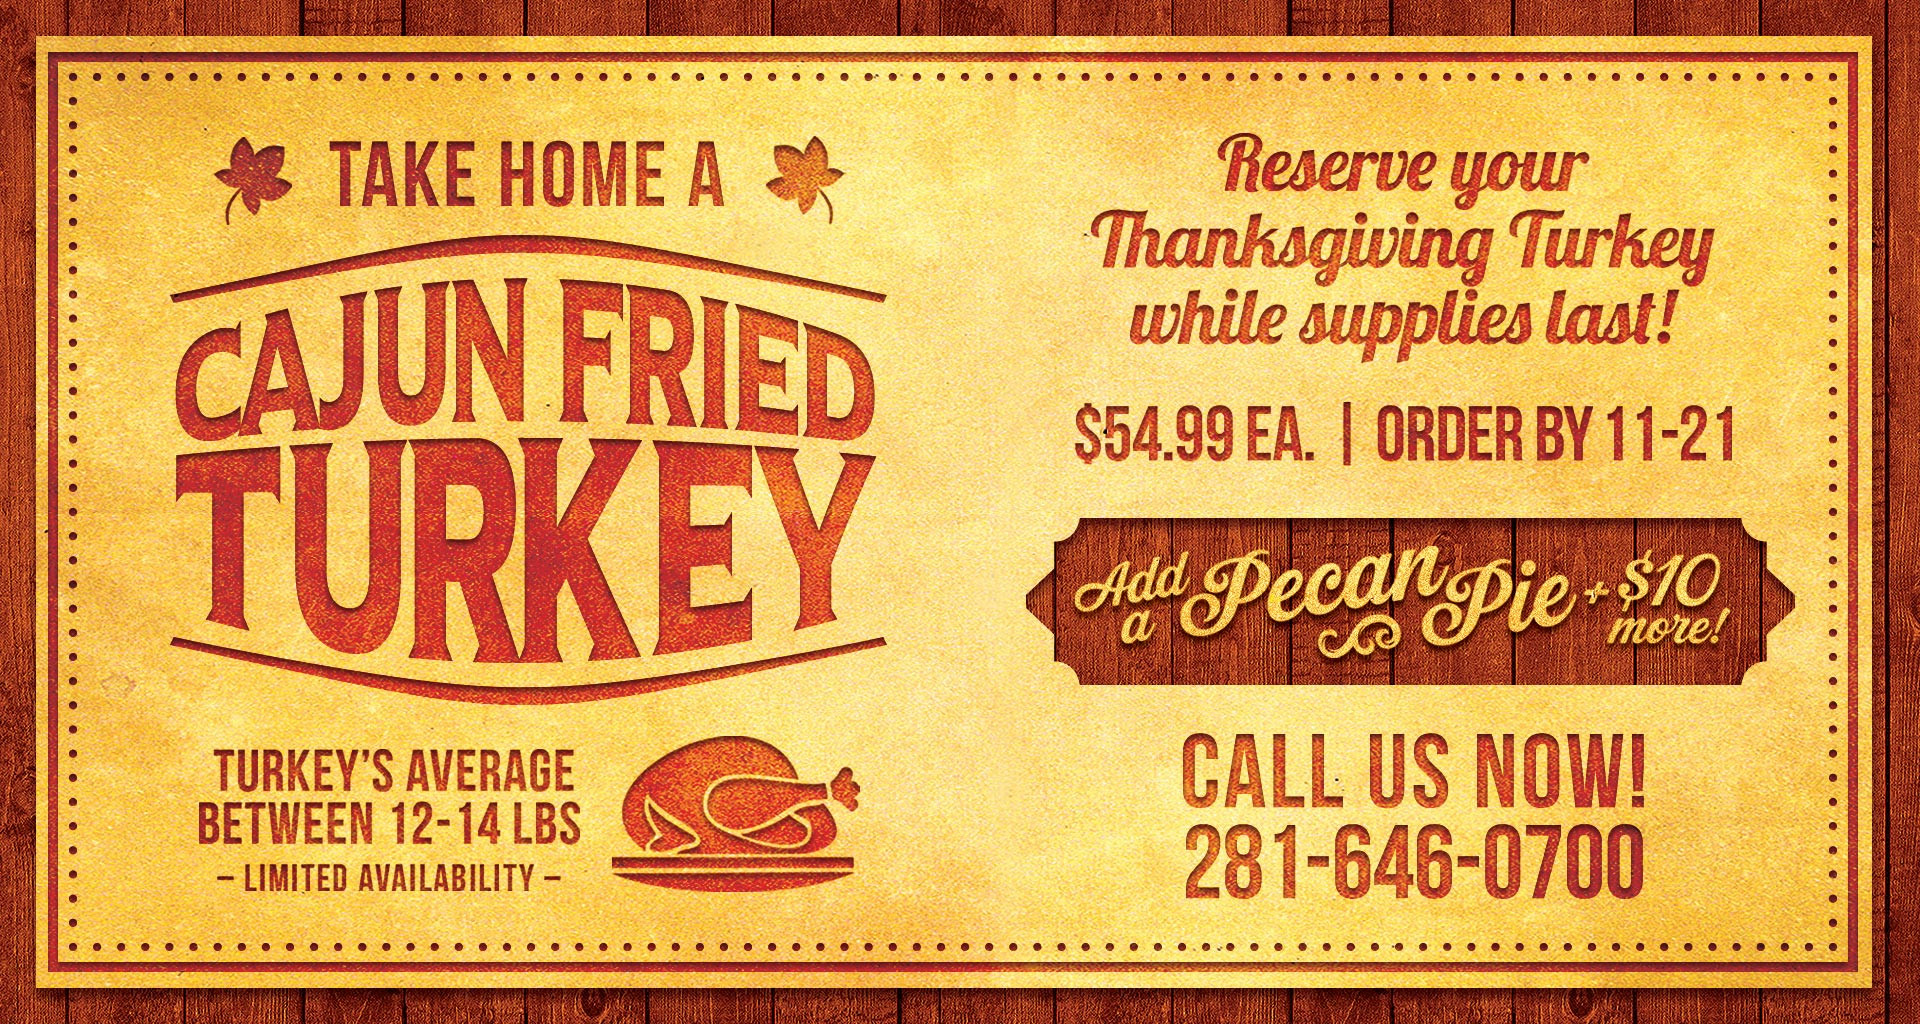 Thanksgiving Turkey Order  Take Home a Cajun Fried Turkey Orleans Seafood Kitchen